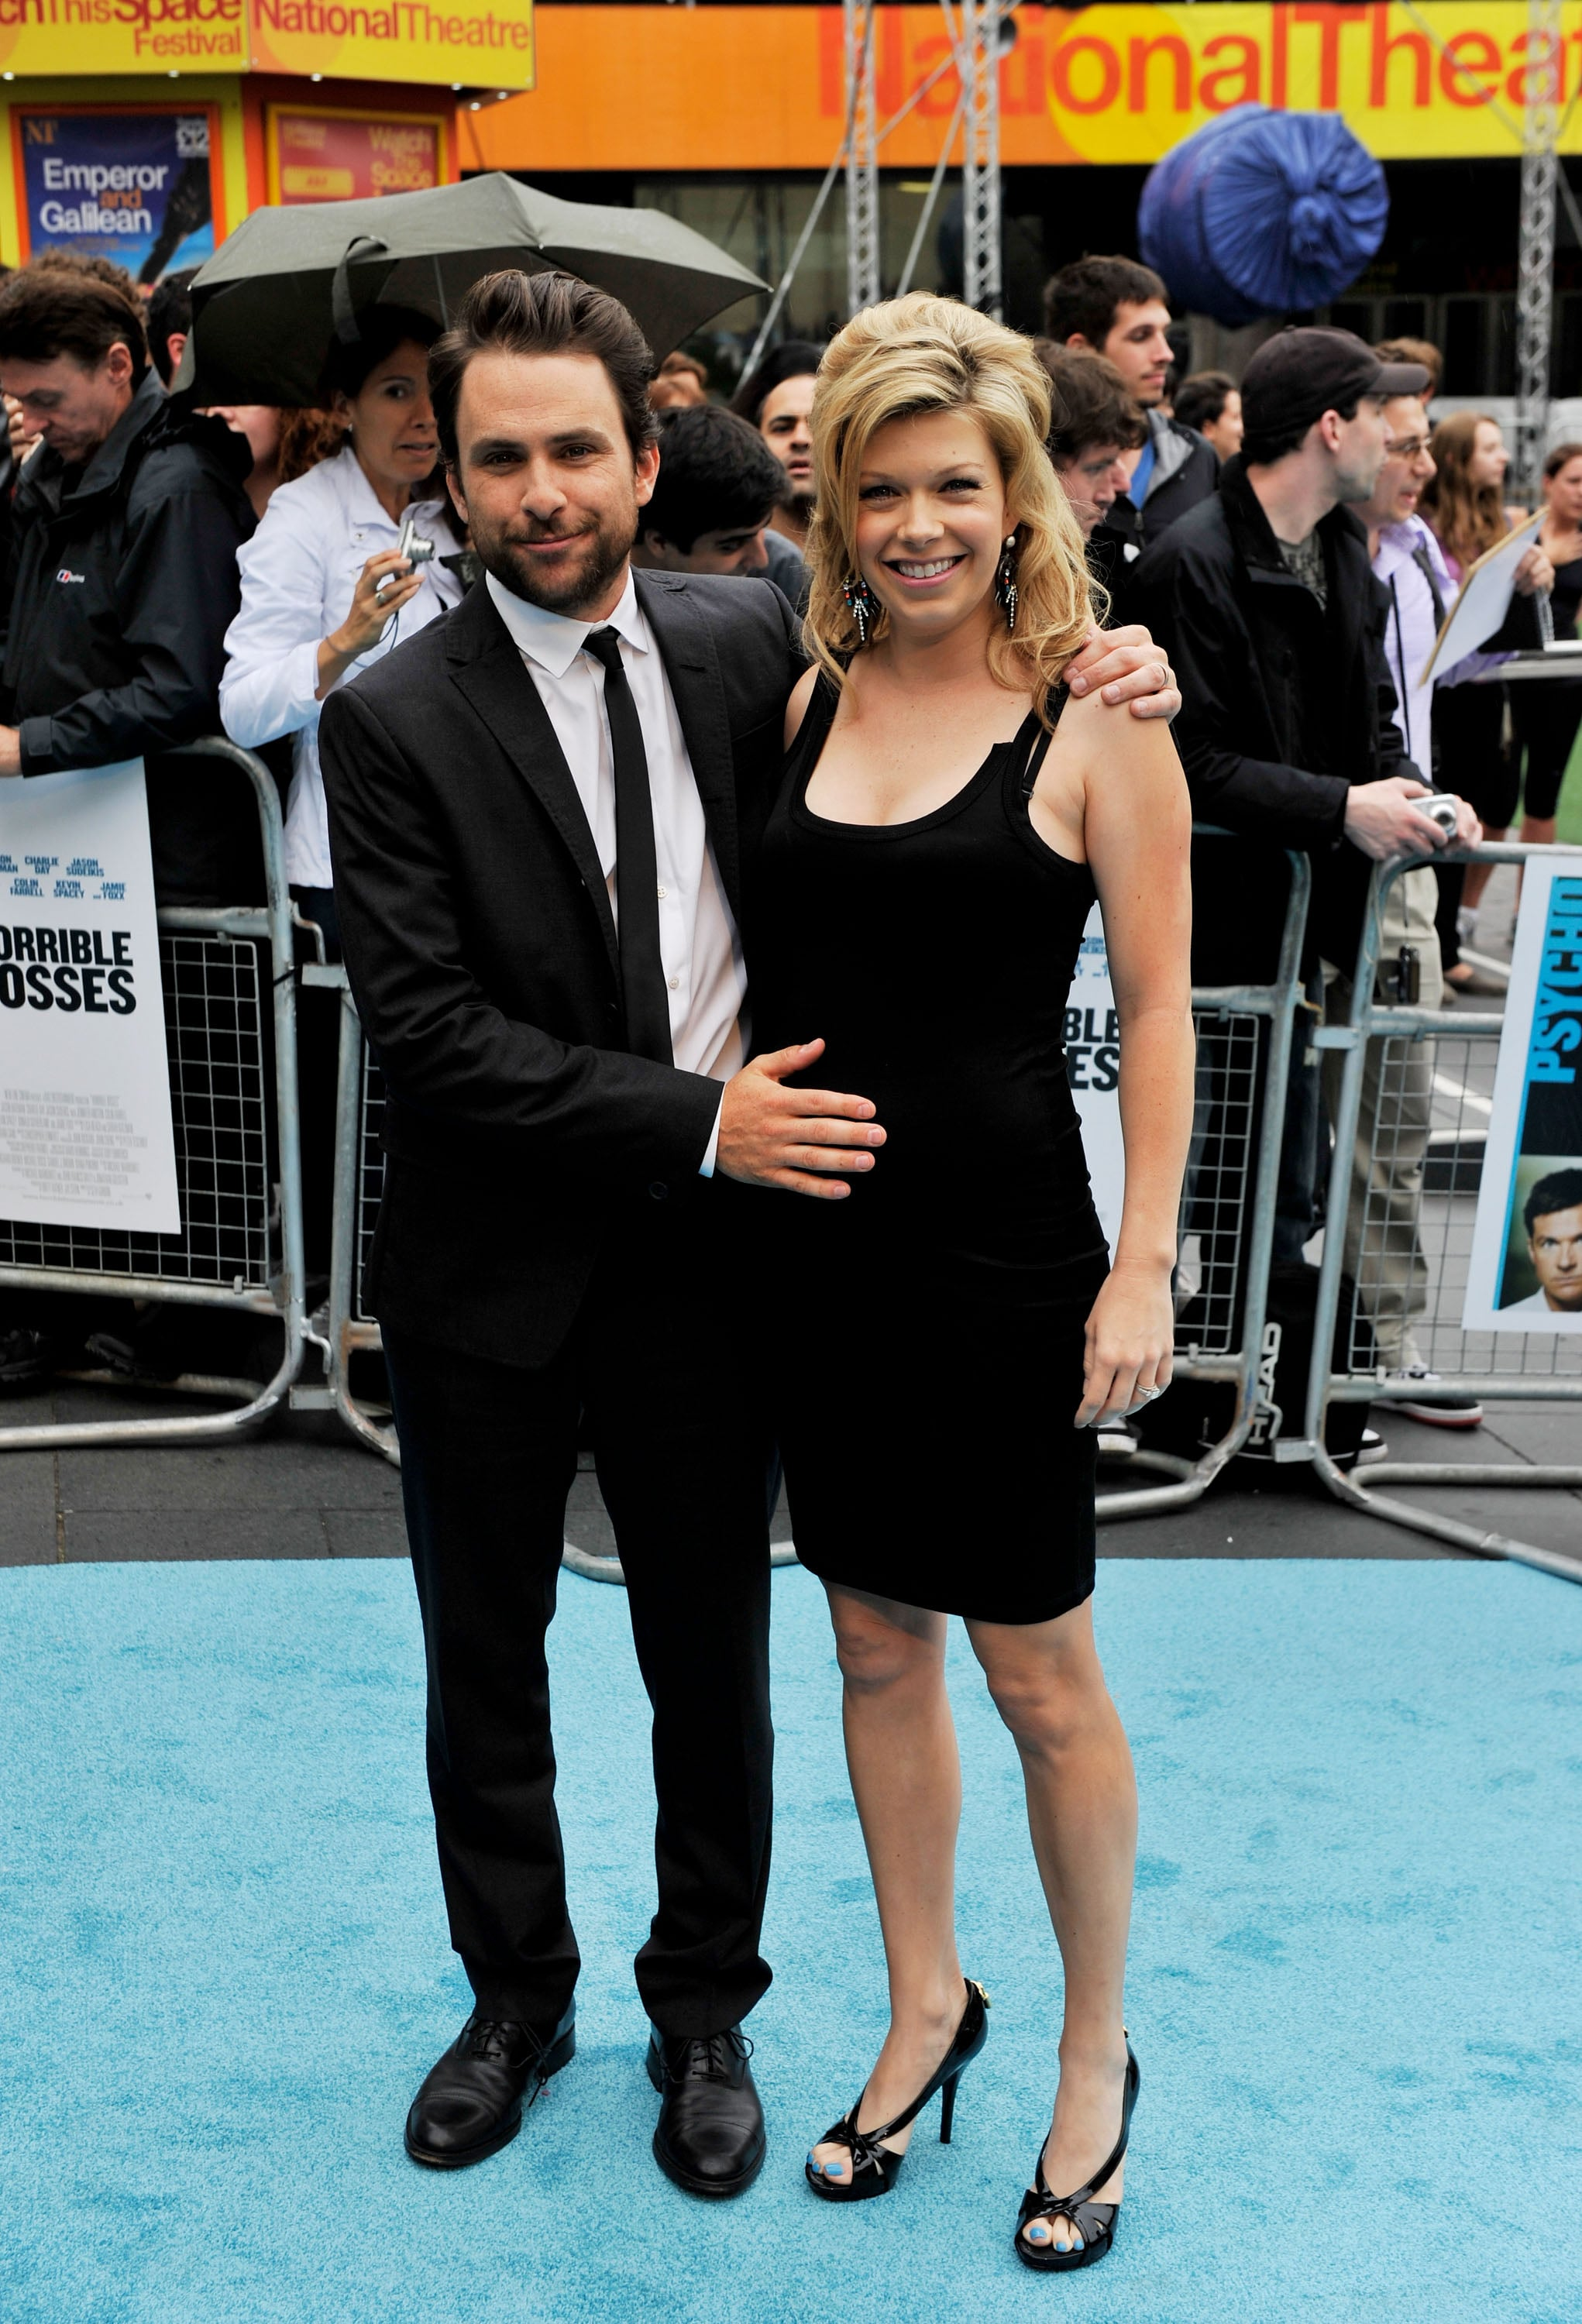 Charlie Day poses with his pregnant wife, Mary Elizabeth Ellis.